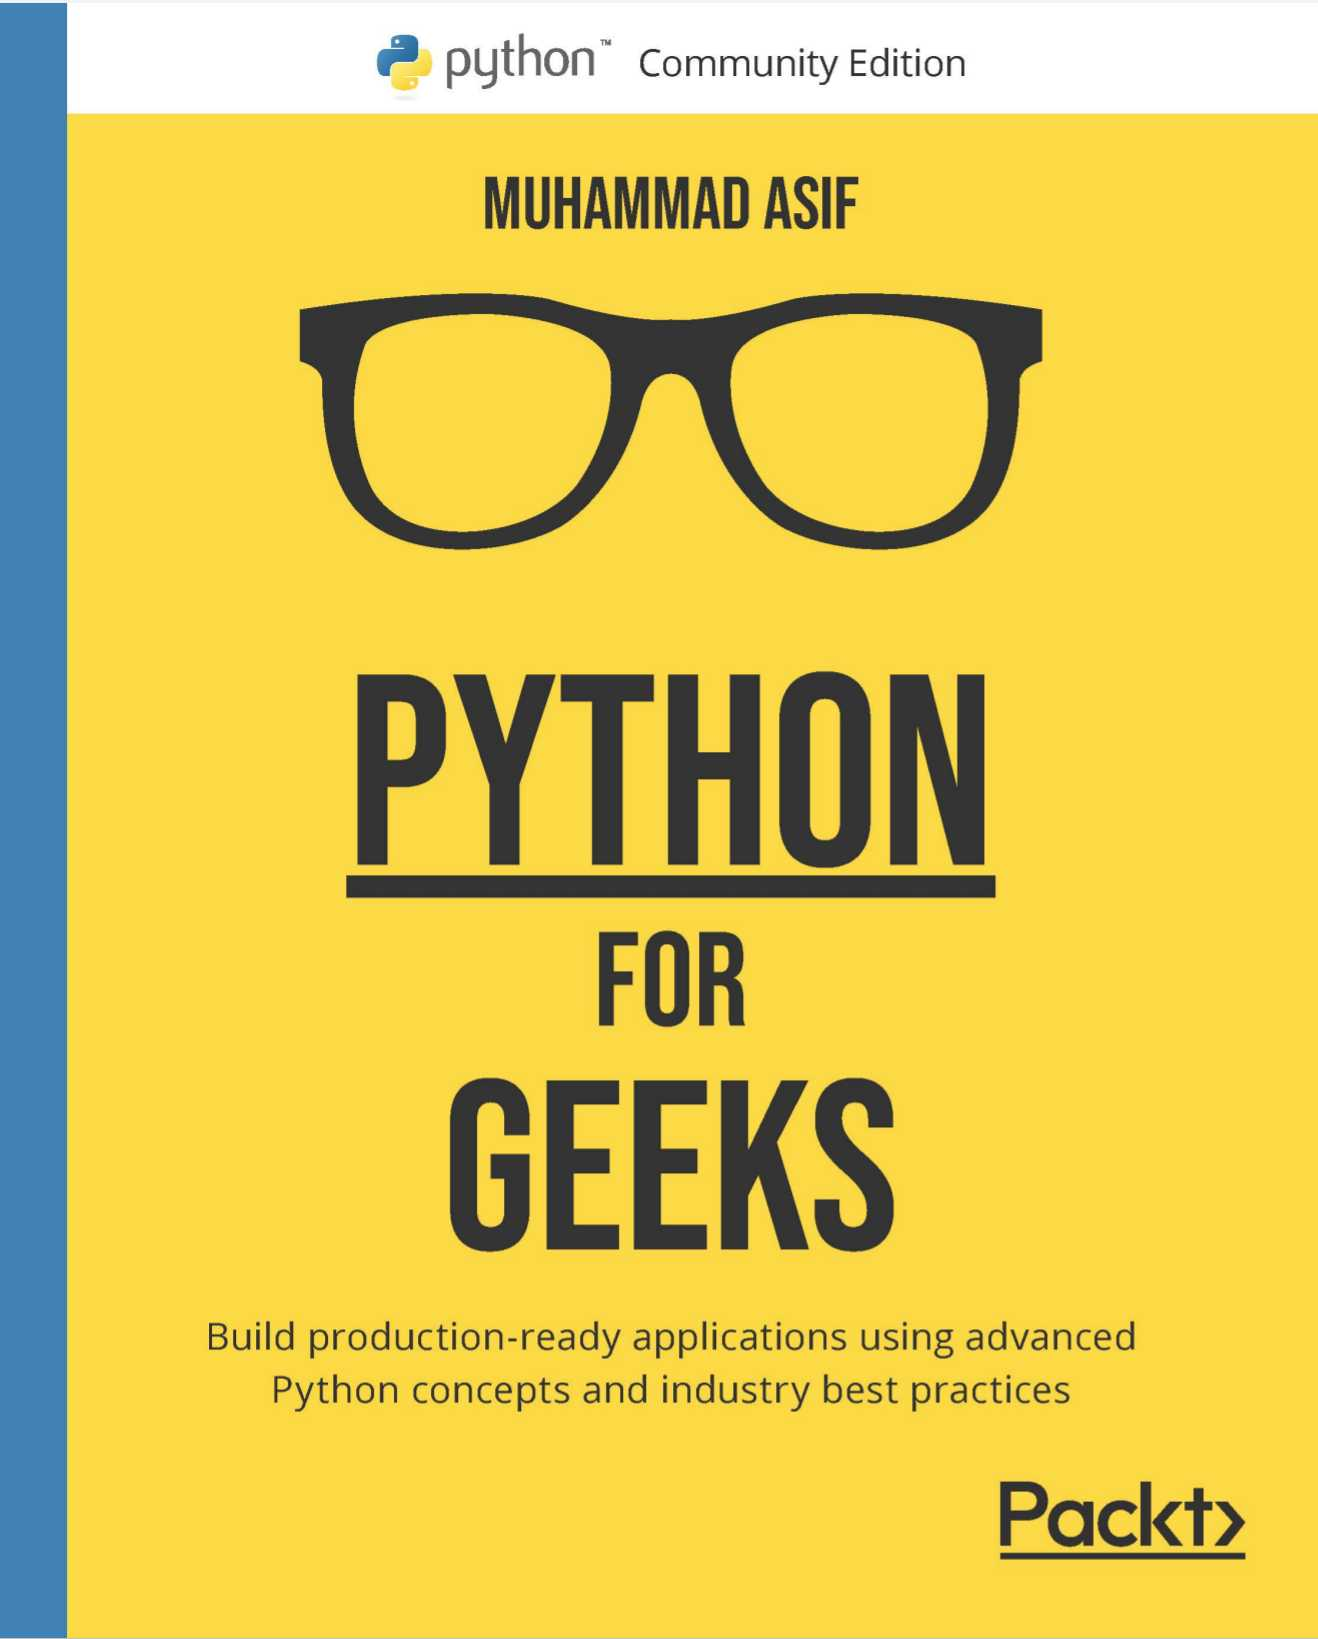 Python for Geeks: Build production-ready applications using advanced Python concepts and industry best practices